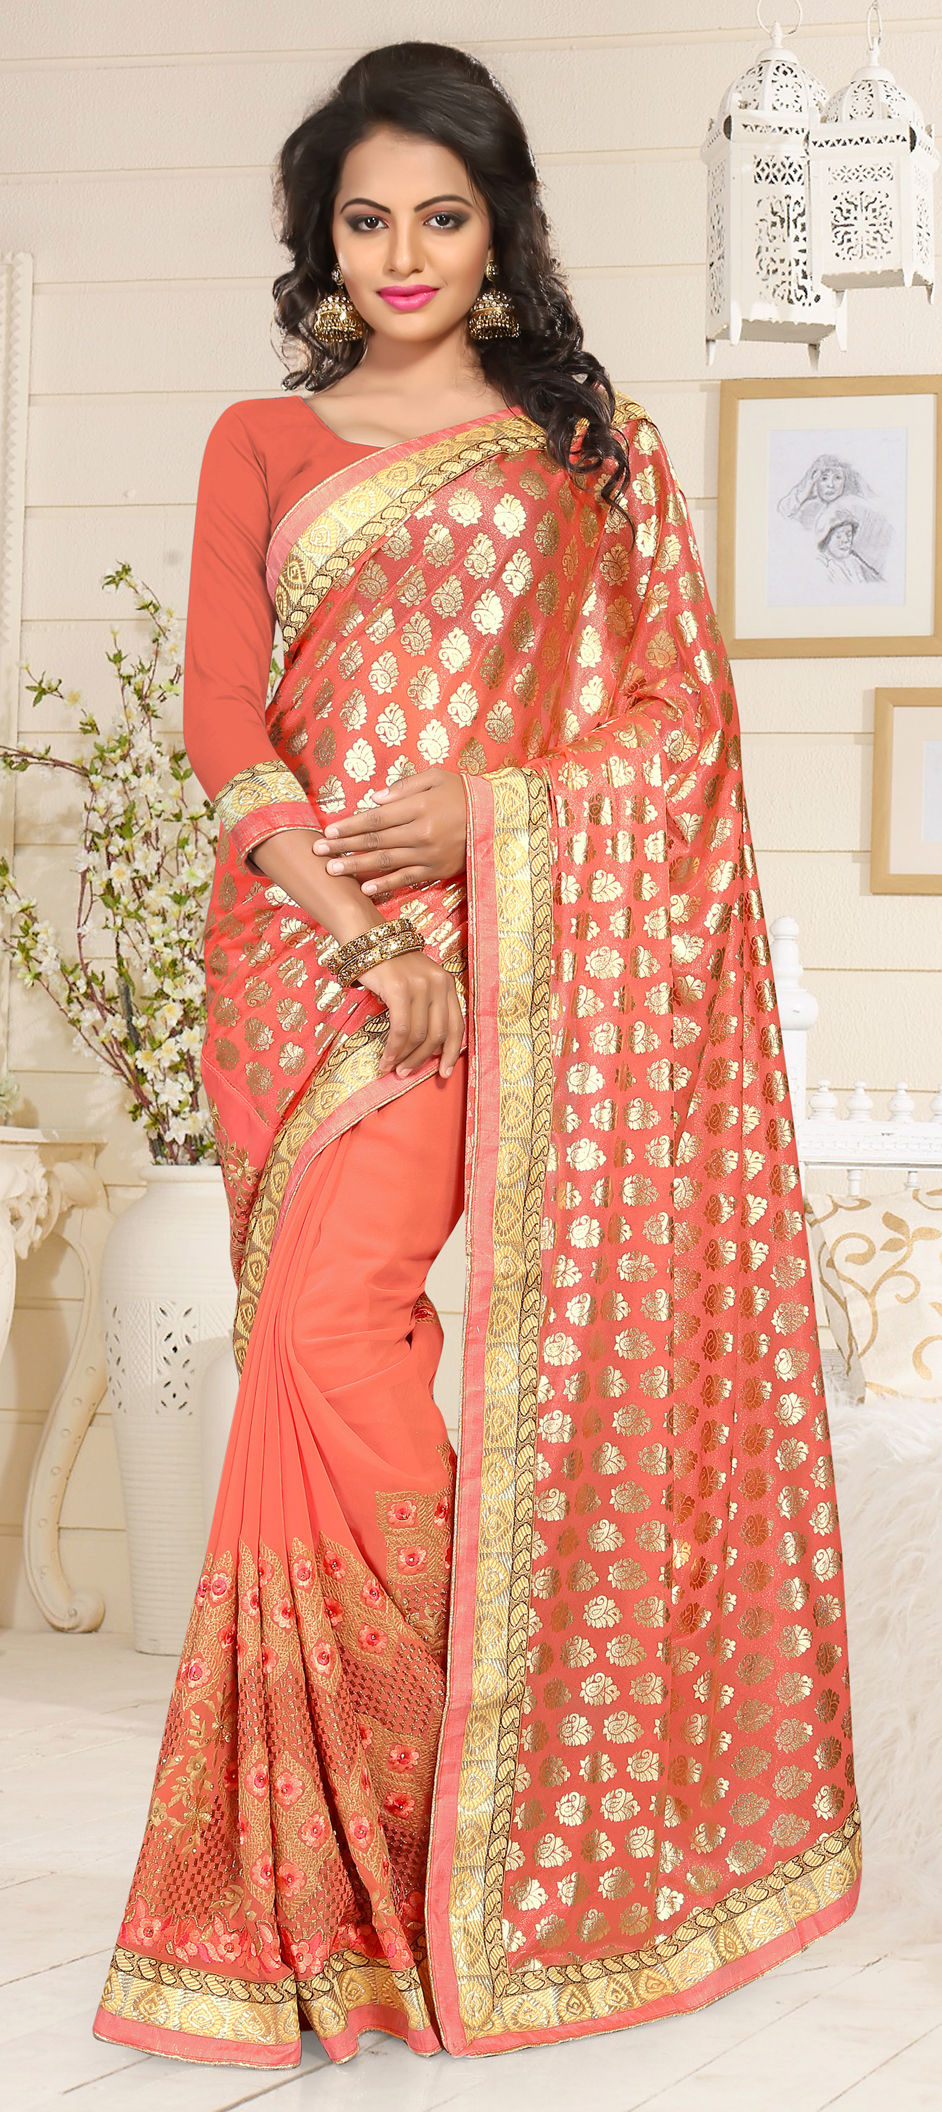 26c5a36217 721536: Orange color family Embroidered Sarees, Party Wear Sarees ...